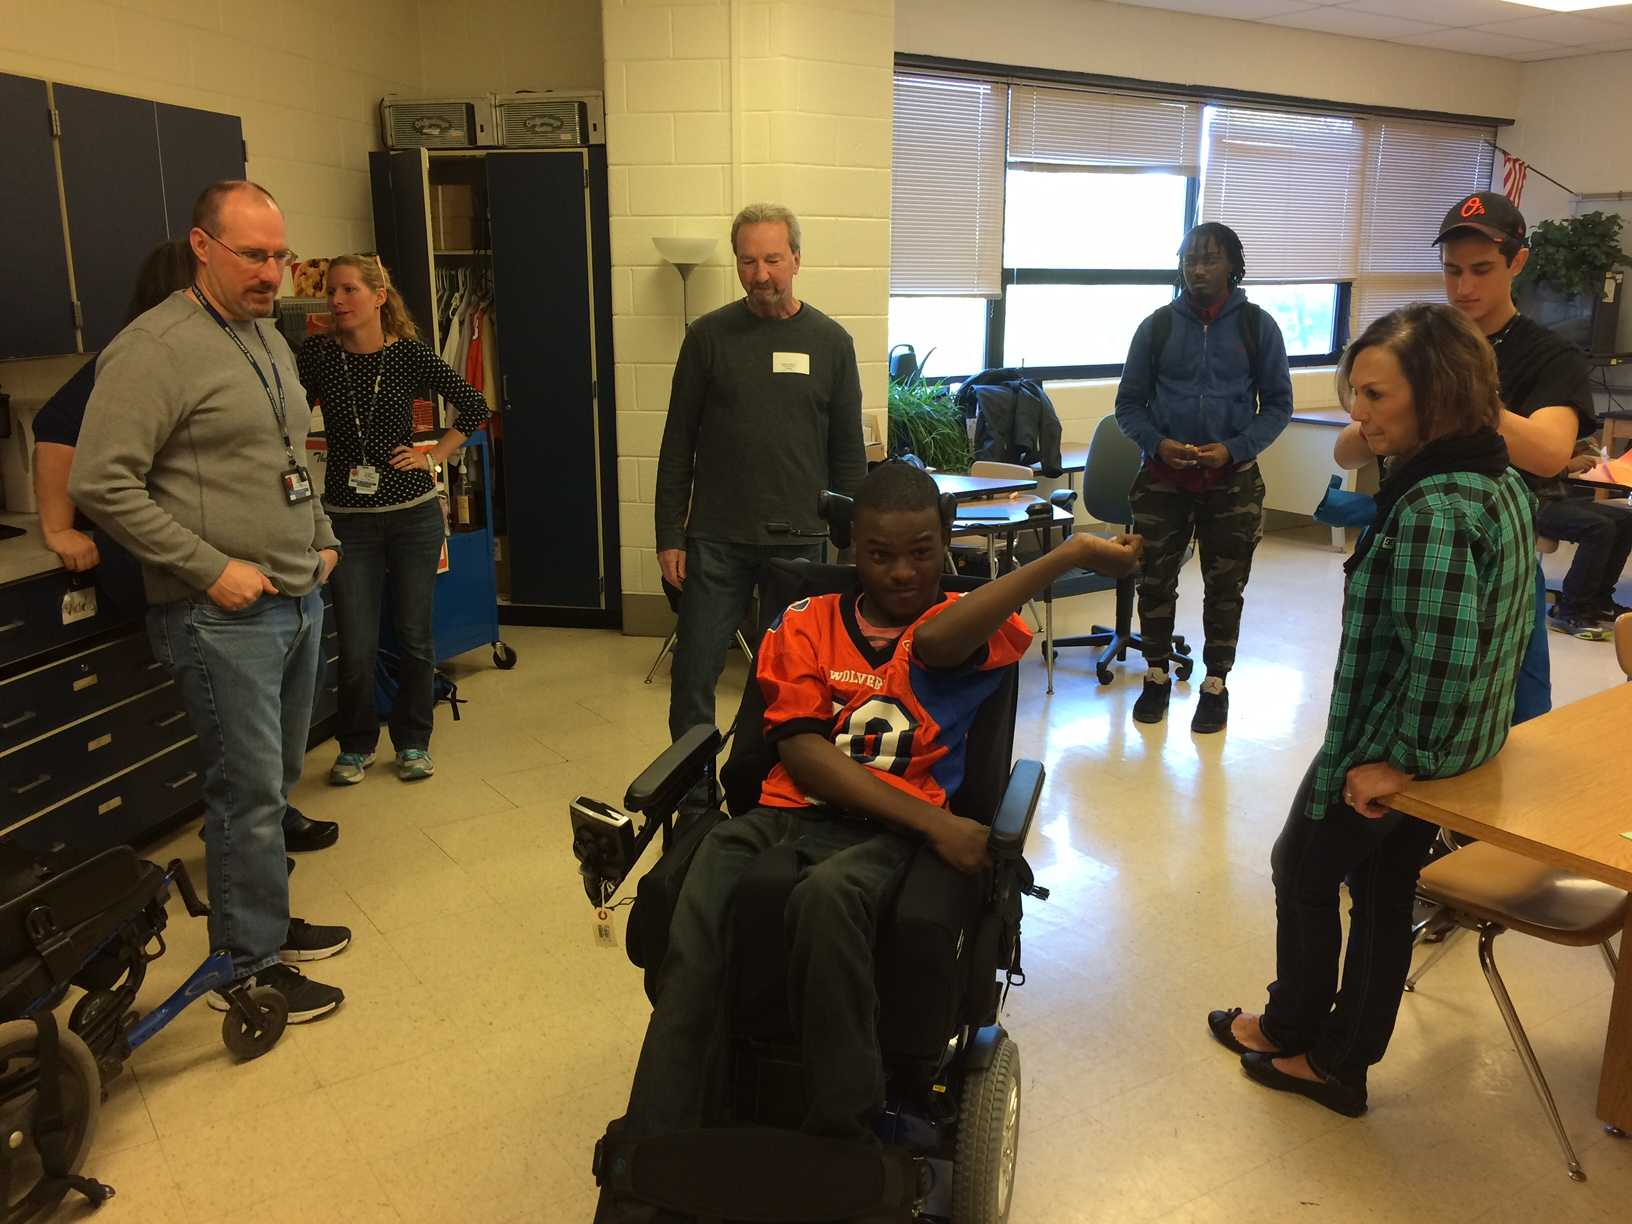 Senior Ibrahim Samia tries out his new wheelchair that he can control himself for the first time.